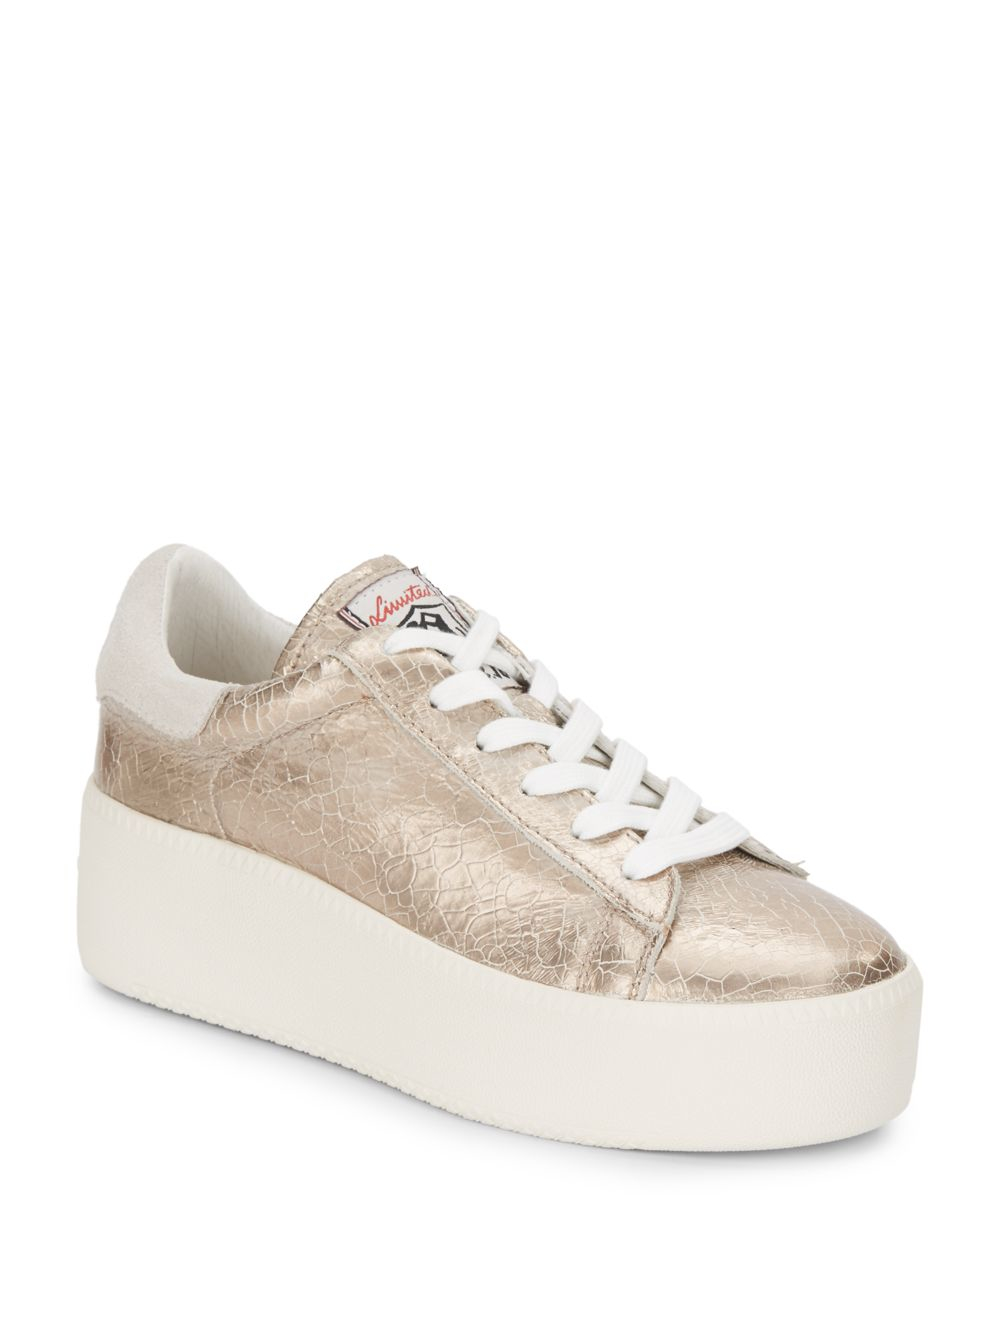 40fcf78f5d15 Lyst - Ash Cult Metallic Leather Platform Sneakers in Natural